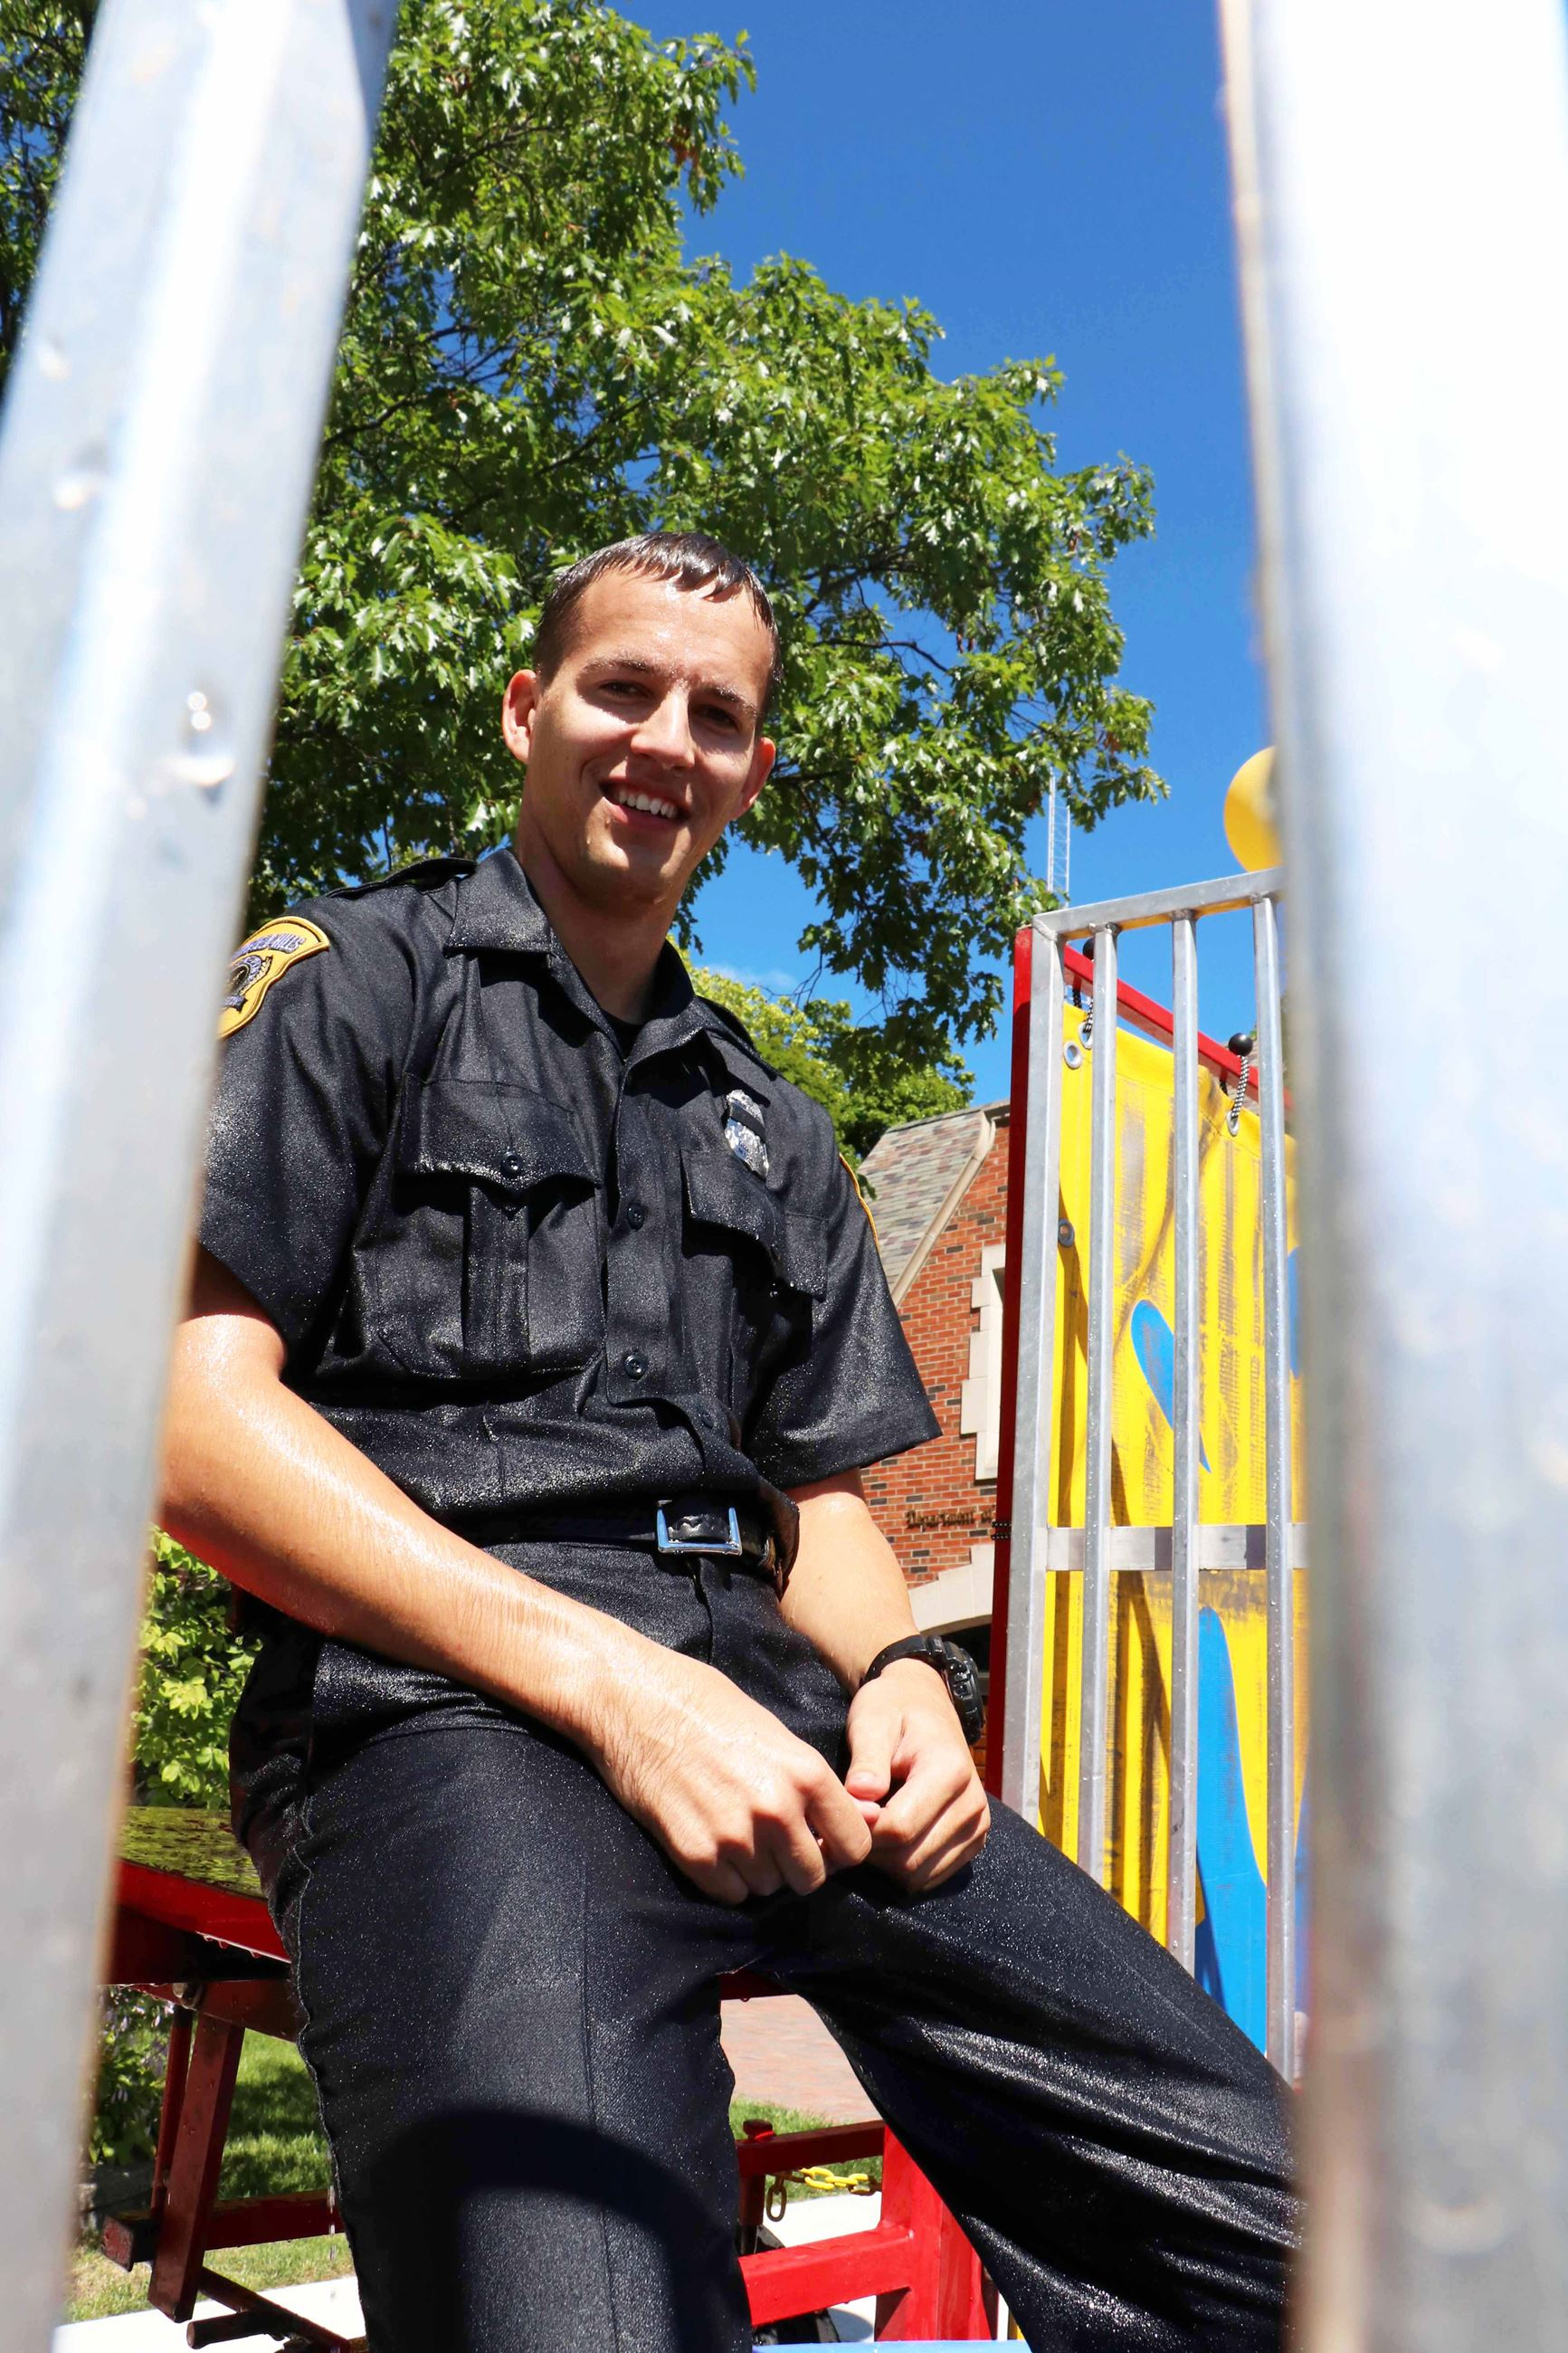 Officer in Dunk Tank